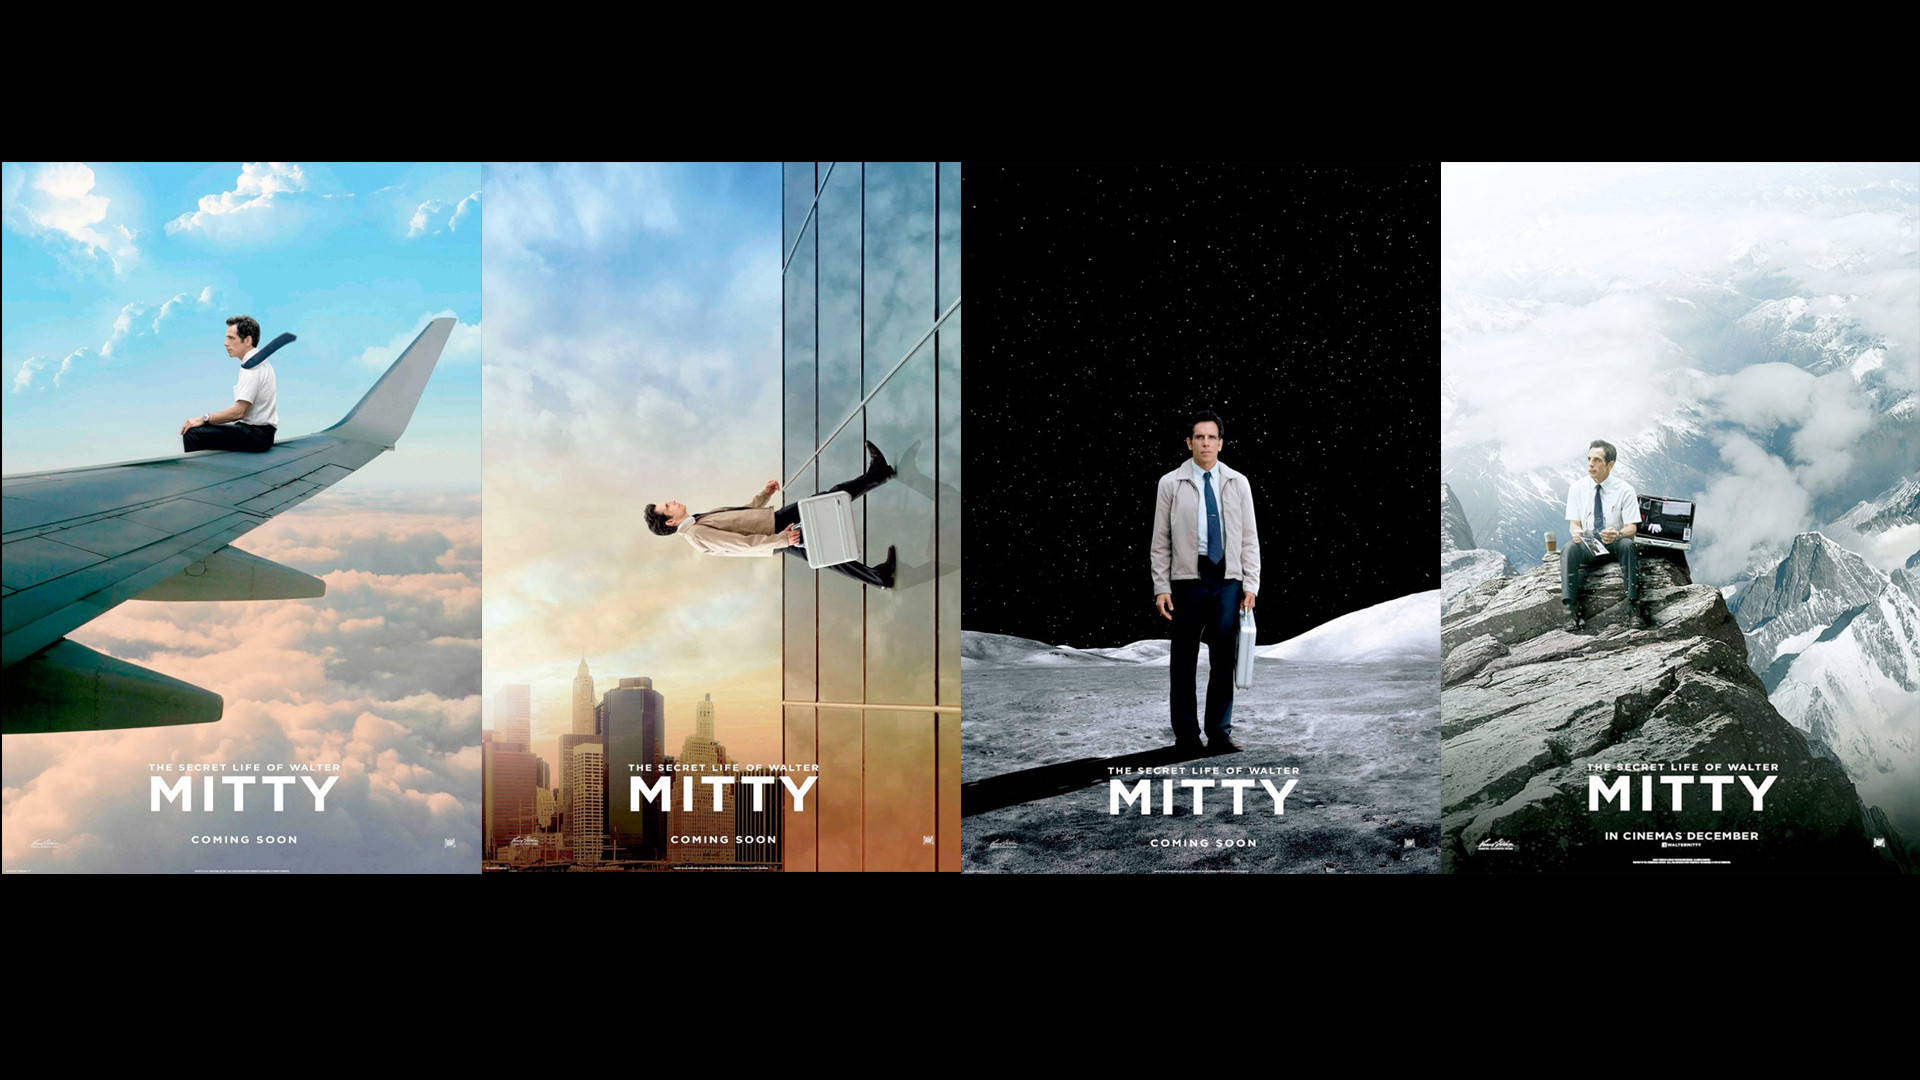 walter mitty wallpaper - photo #9